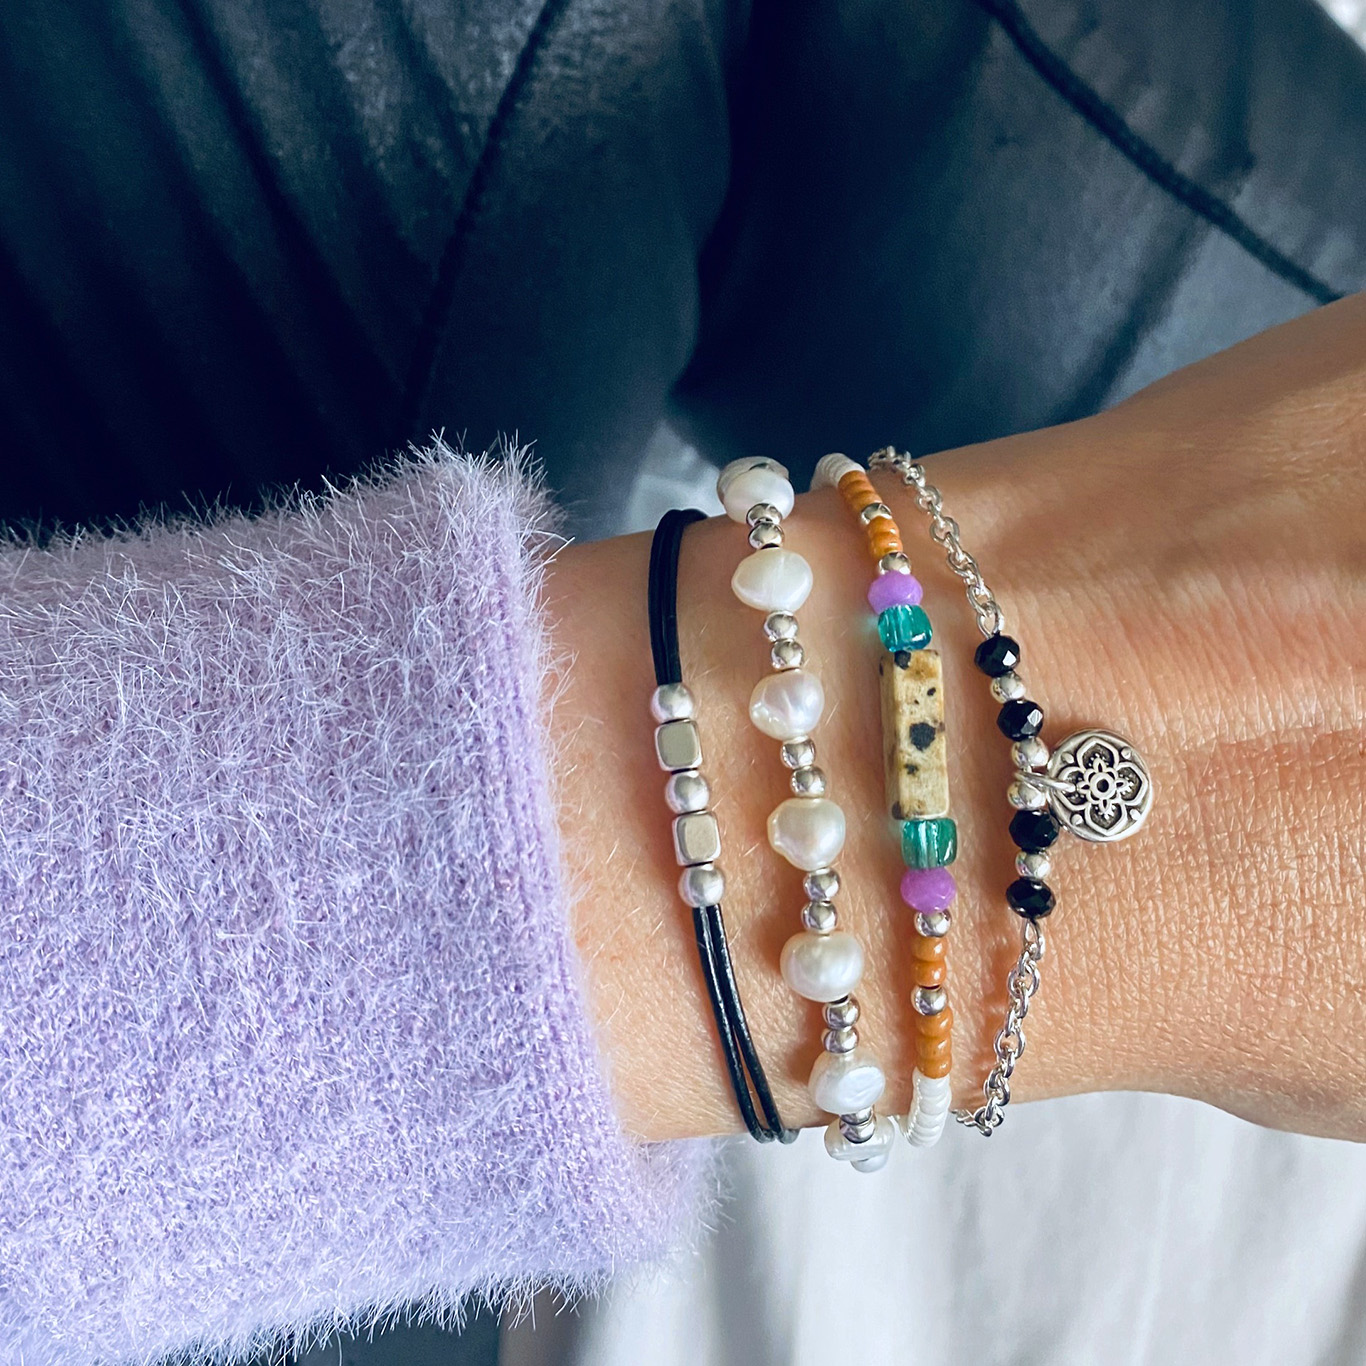 Armparty zwart & paars